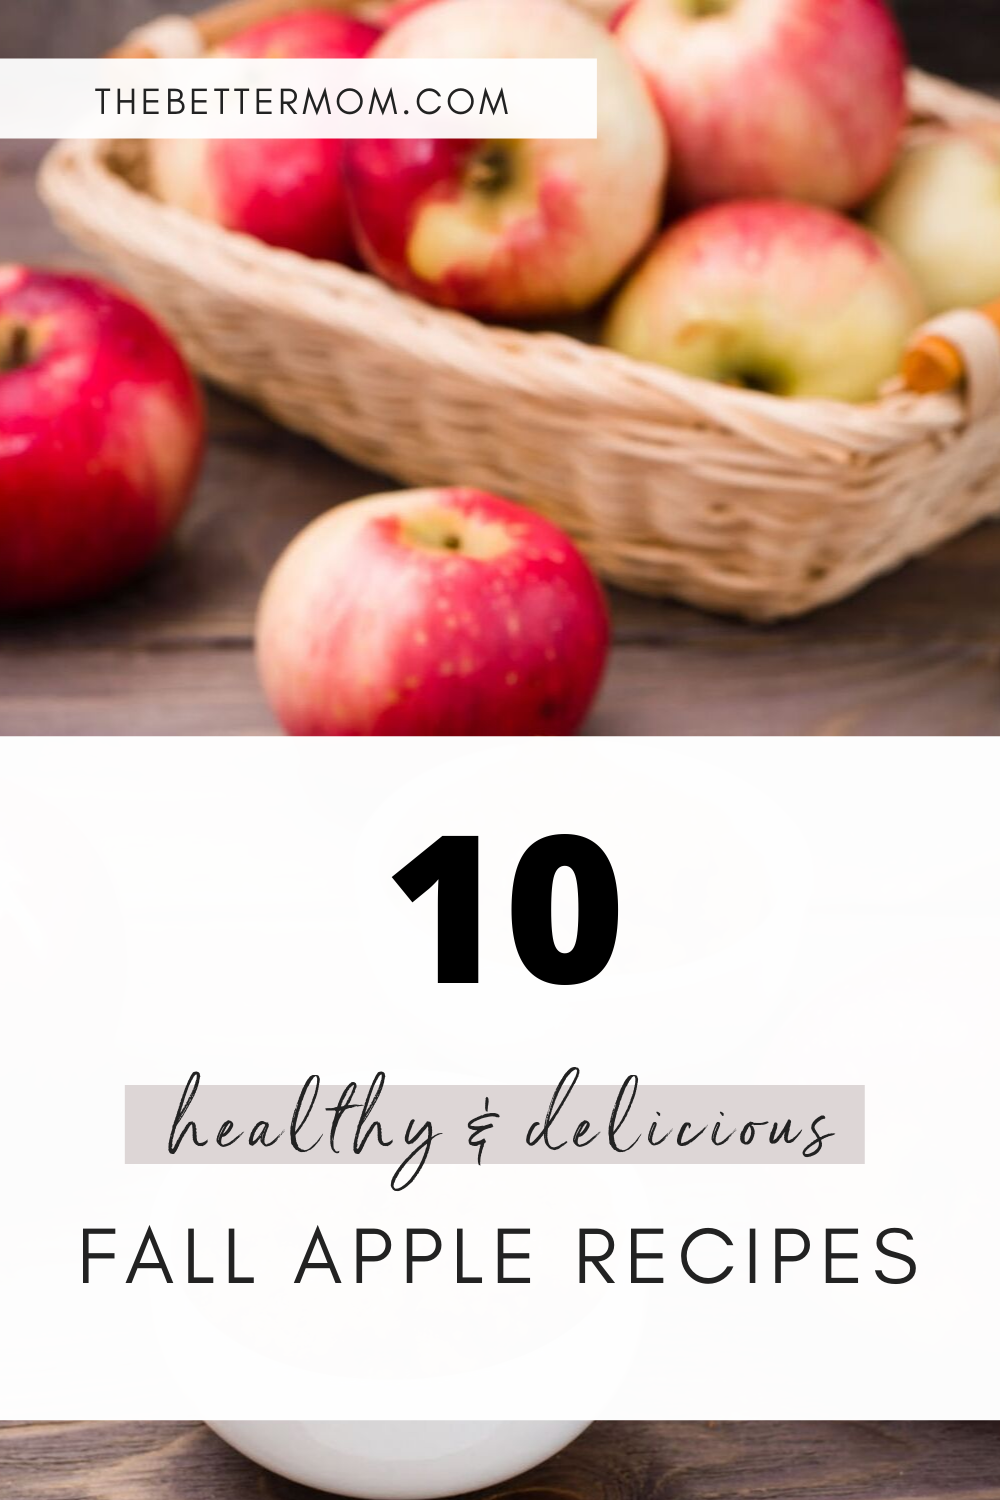 10 Healthy & Delicious Fall Apple Recipes for your family. Gluten-free and easy to make ahead too!